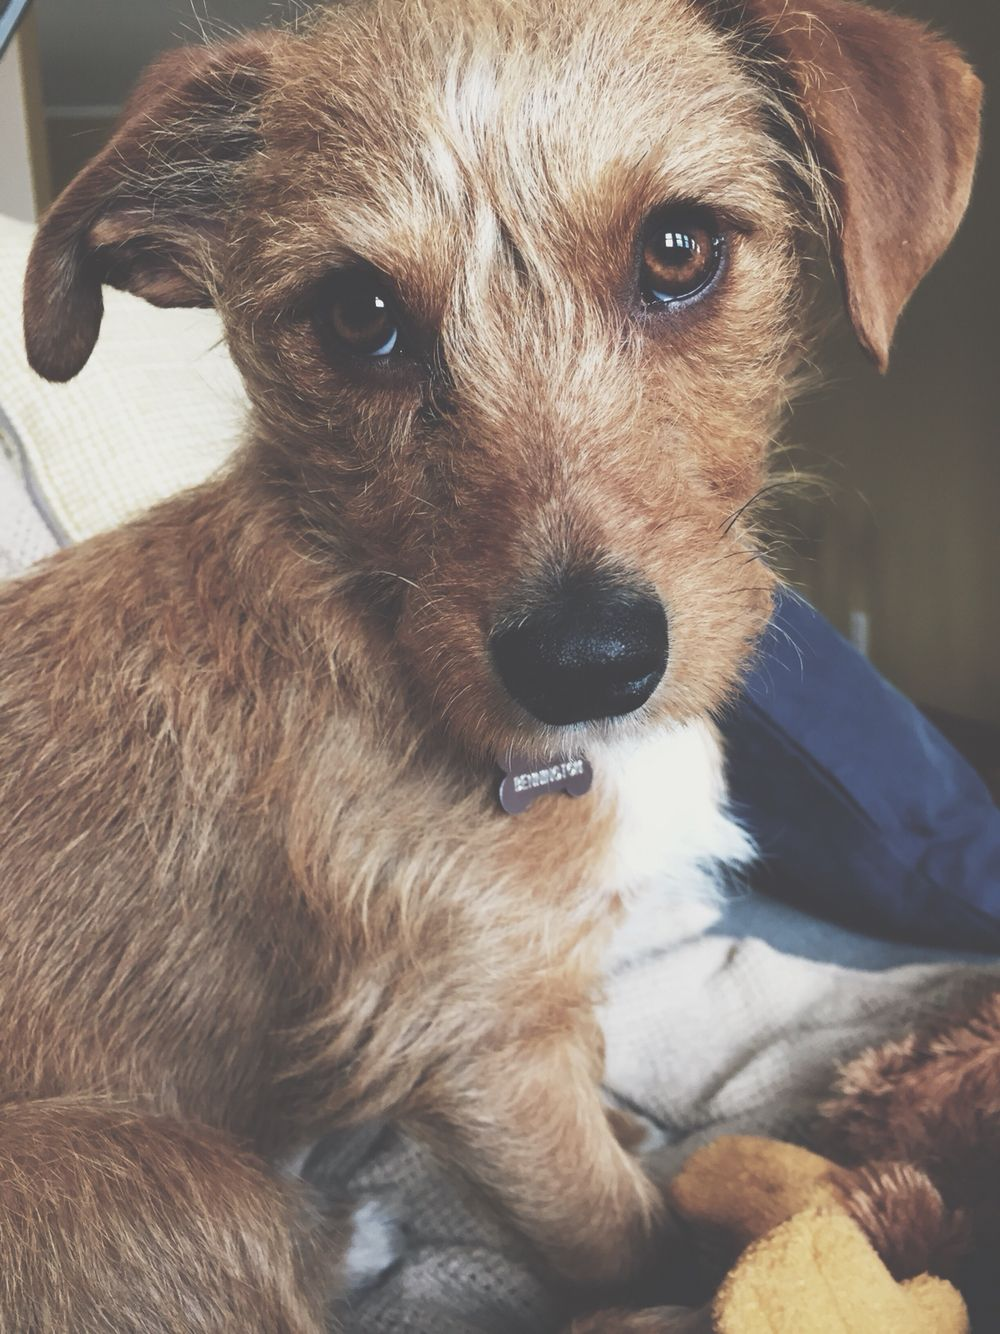 Our little rescue dog, a wirehaired dachshund mix. Just